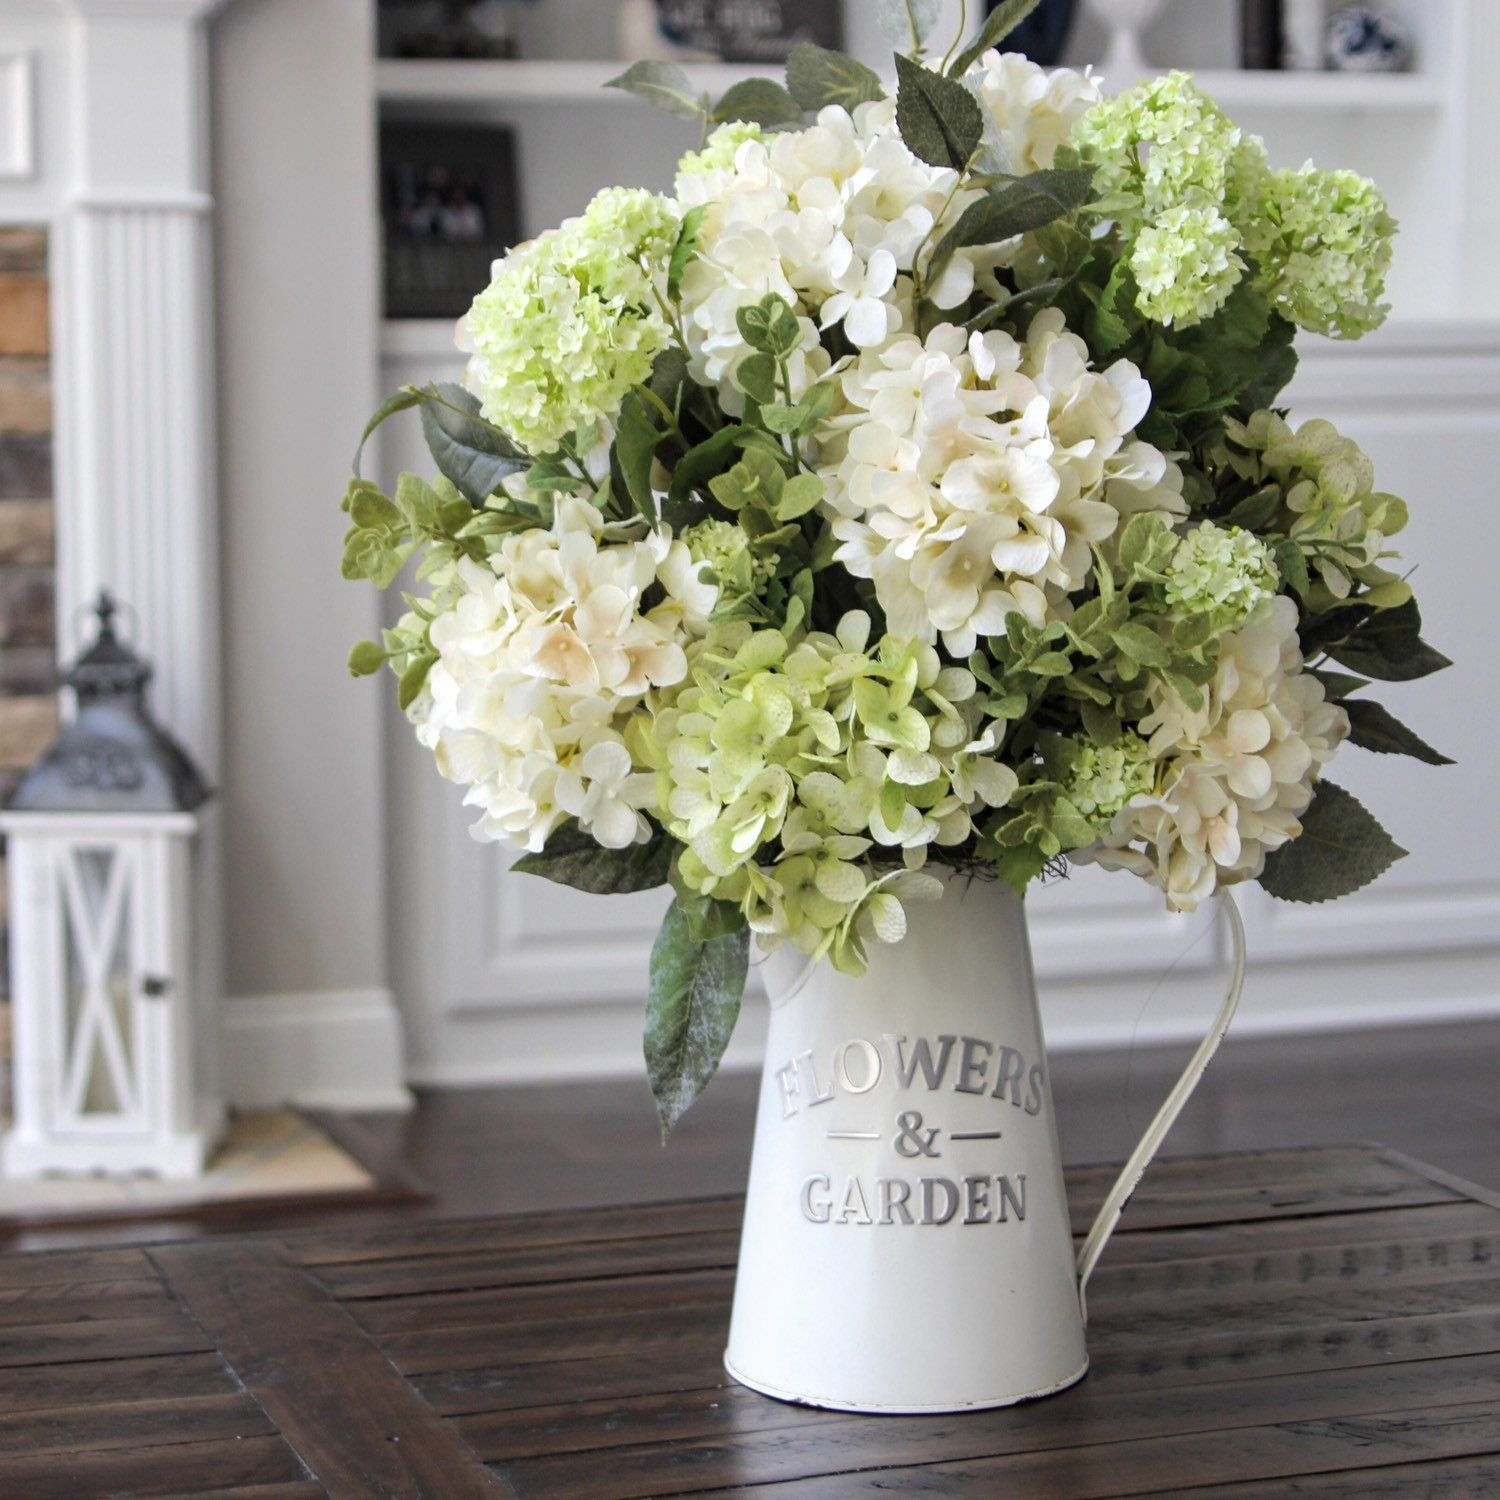 wall hanging bud vase of vase and flowers for living room elegant patio plants in pots ideas inside vase and flowers for living room best of living room 32 artificial flower arrangements for living